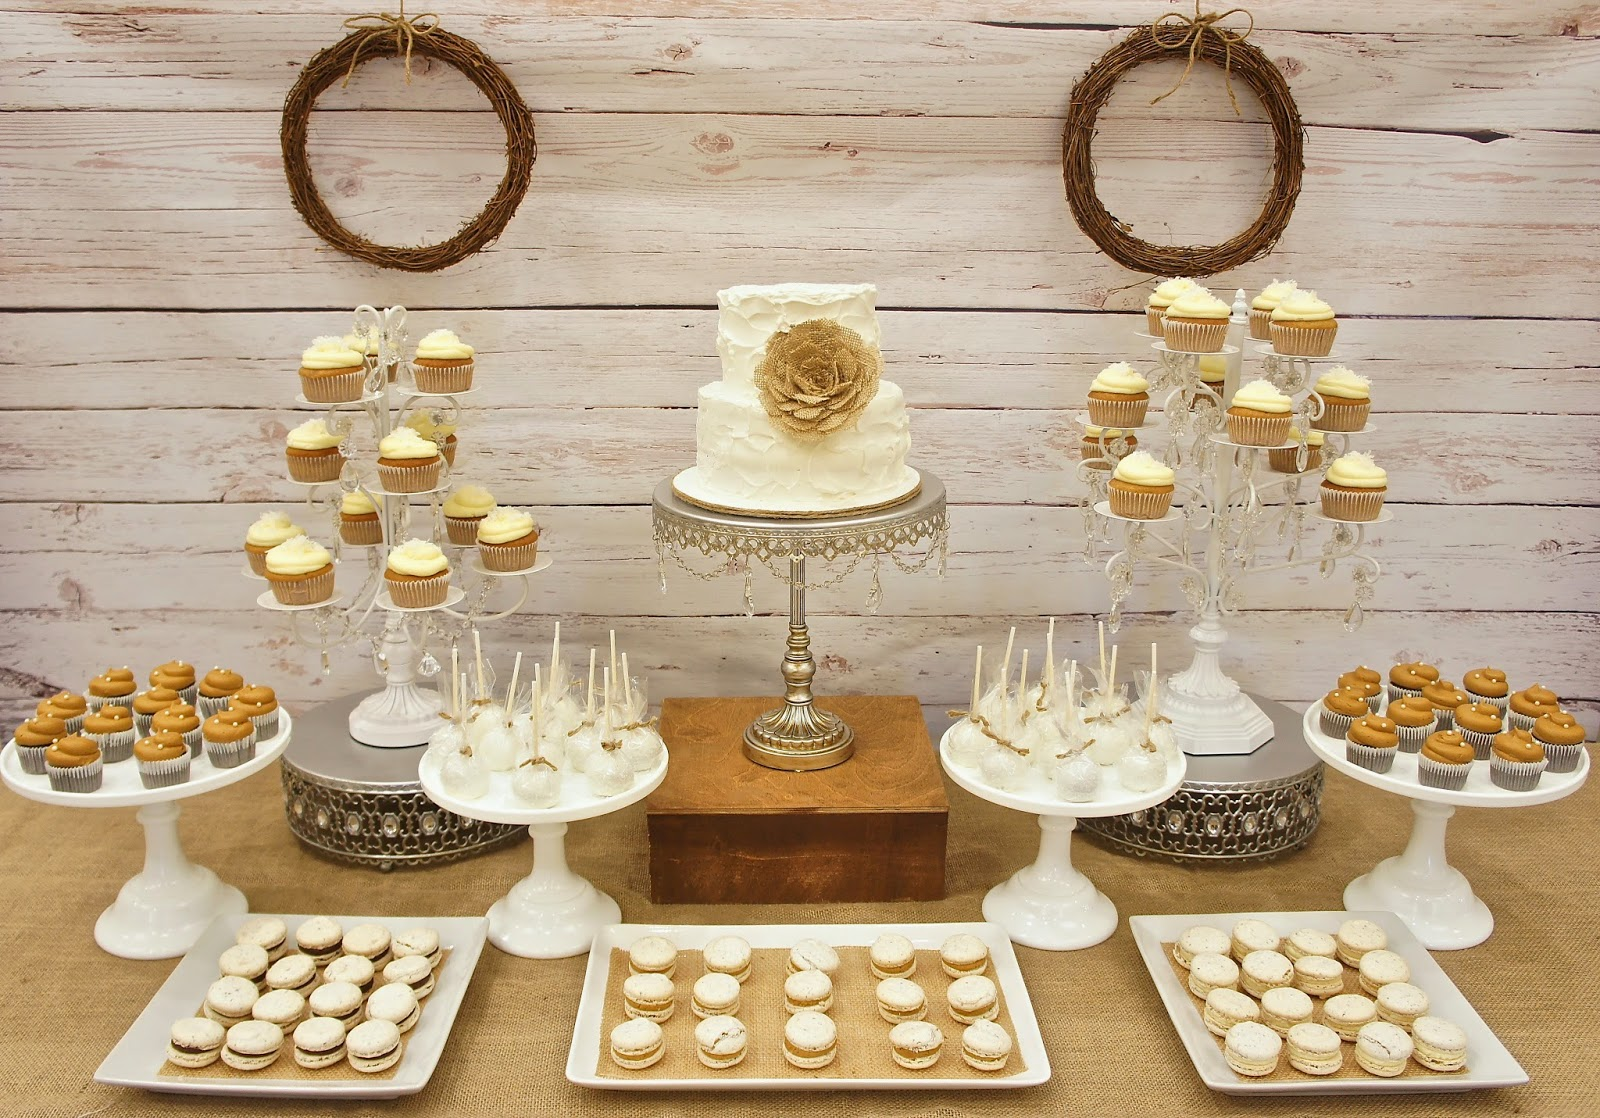 WEDDING DESSERT TABLE LOS ANGELES CA